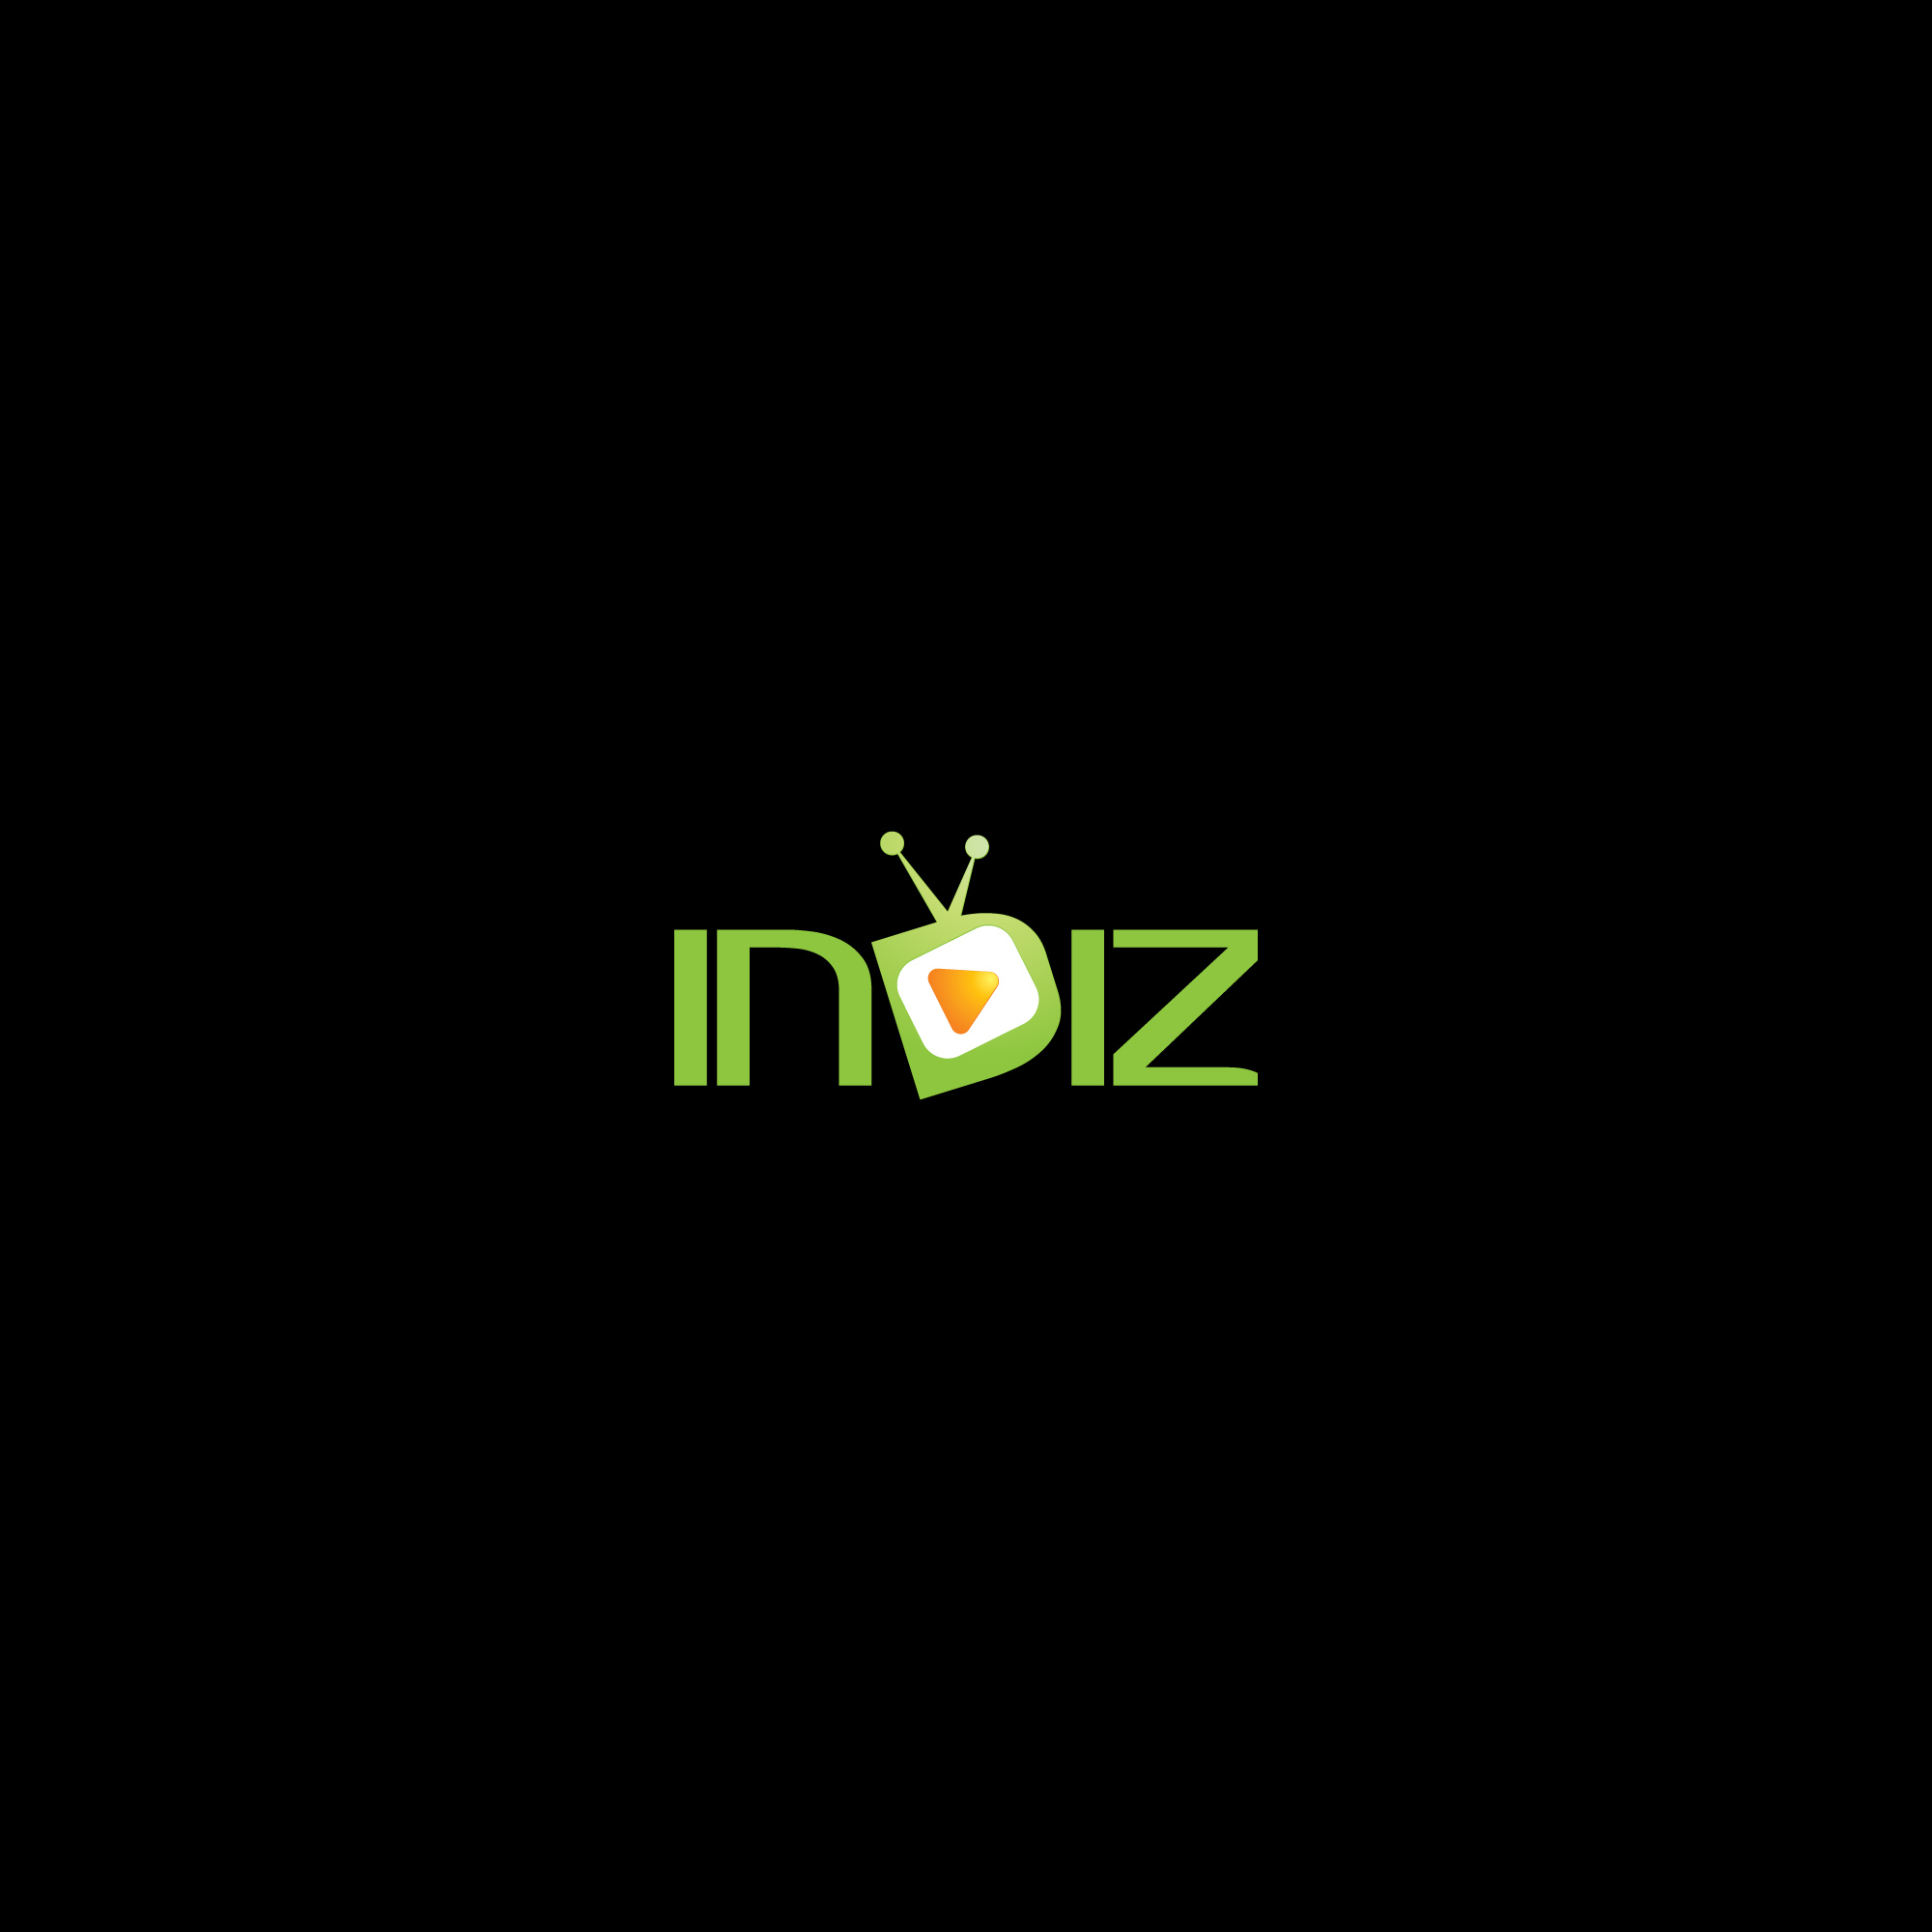 Logo Design by Mrs Suhartini - Entry No. 209 in the Logo Design Contest Fun Logo Design for Indiz.